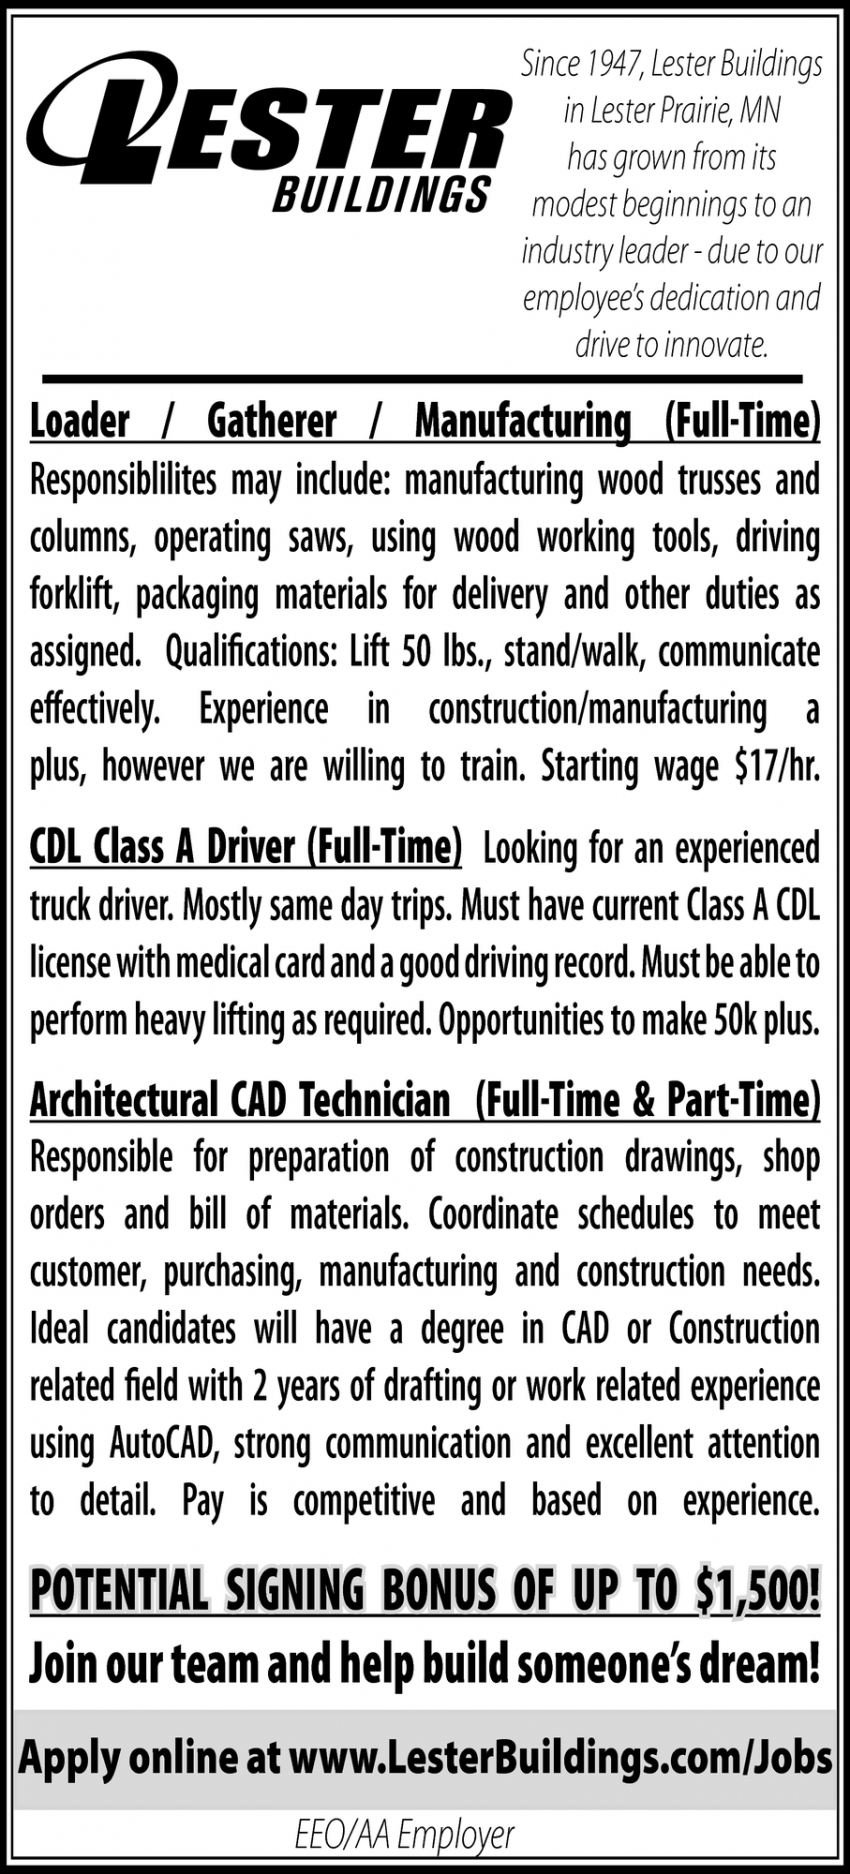 Loader, Gatherer, Manufacturing, CDL Class A Driver, Architectural CAD Technician